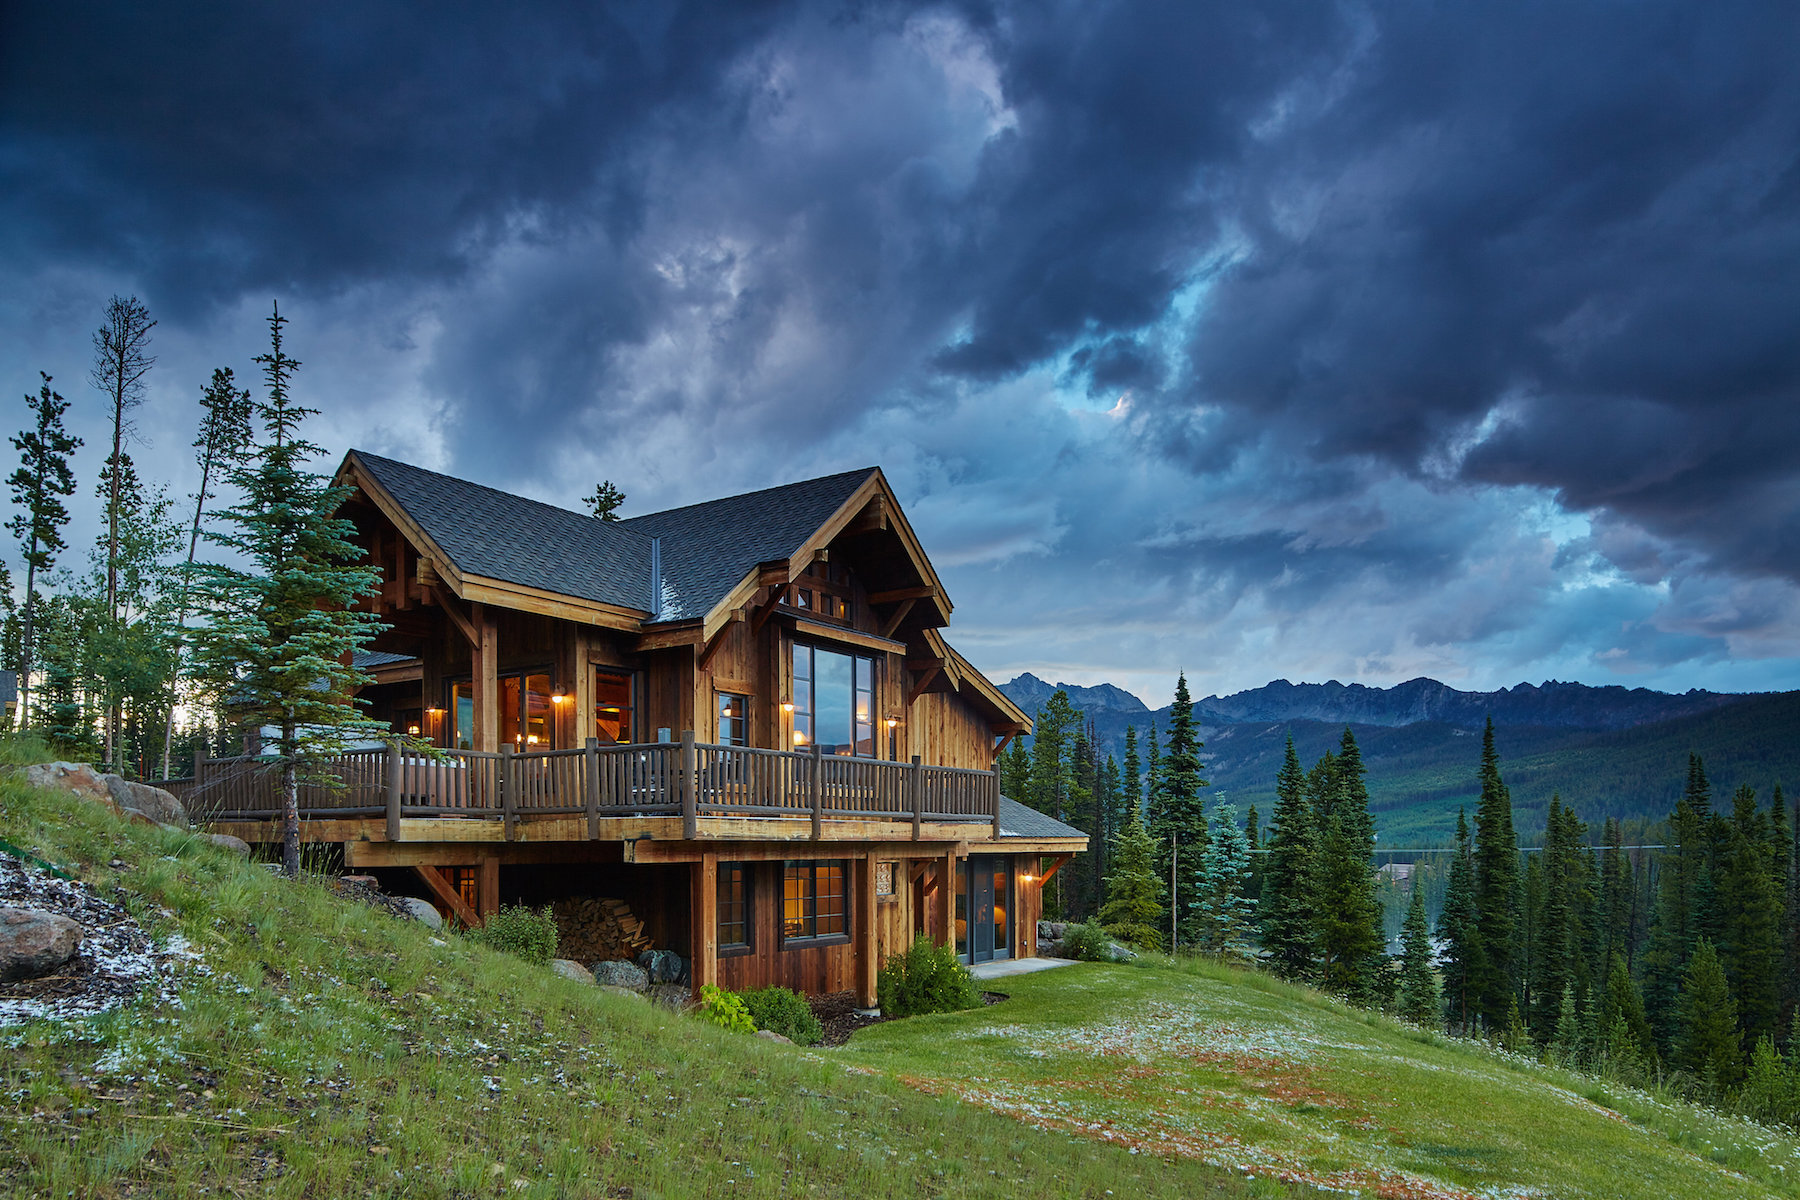 Single Family Home for Sale at Alpine Meadows Chalet 78 5 Silver Star Drive Alpine Meadows Chalet 78 Big Sky, Montana 59716 United States